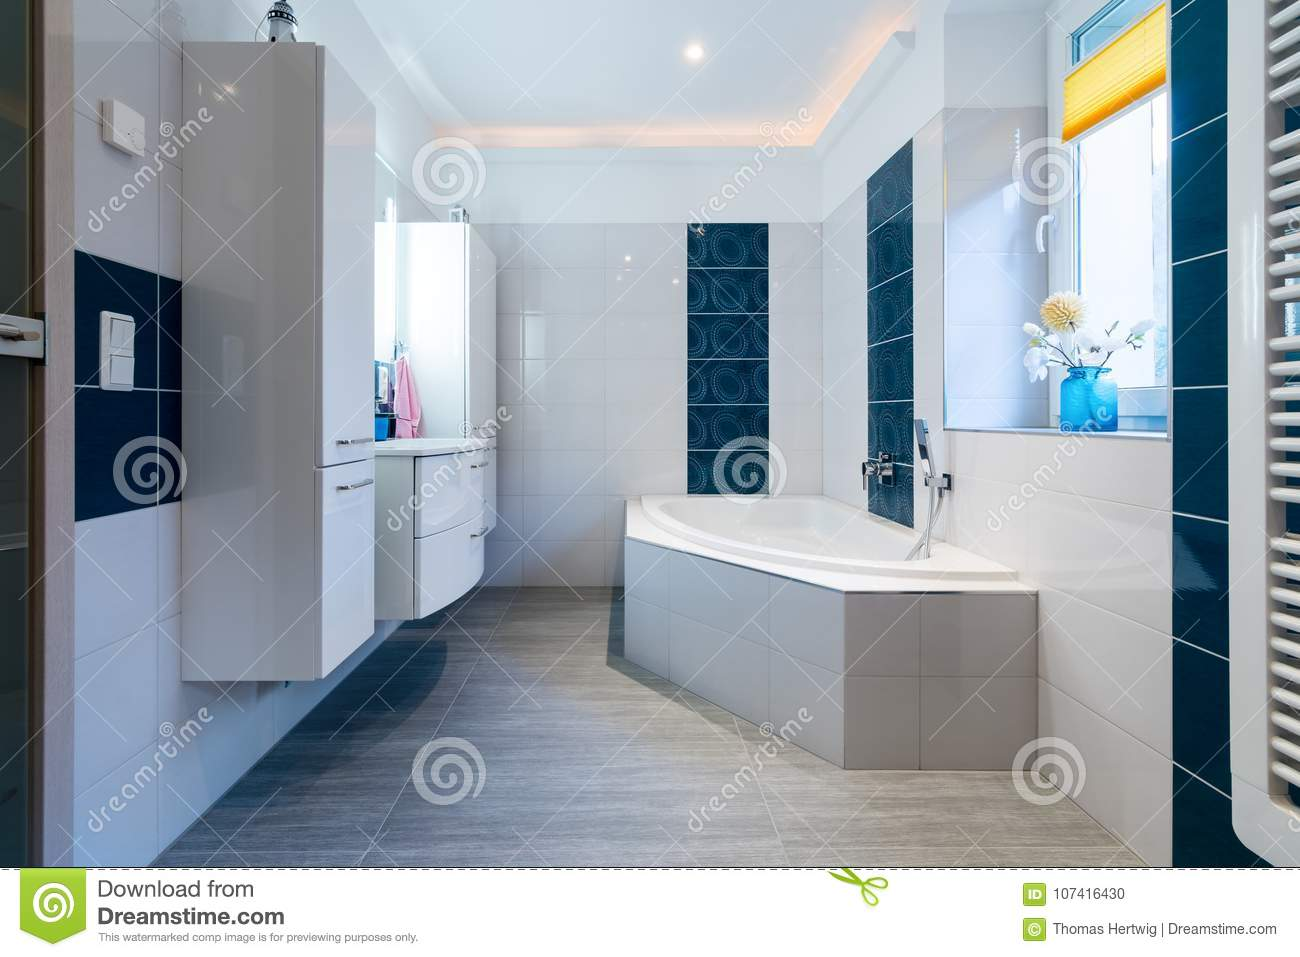 Modern Bathroom - Glossy White And Blue Tiles - Bathtub, Sink And ...